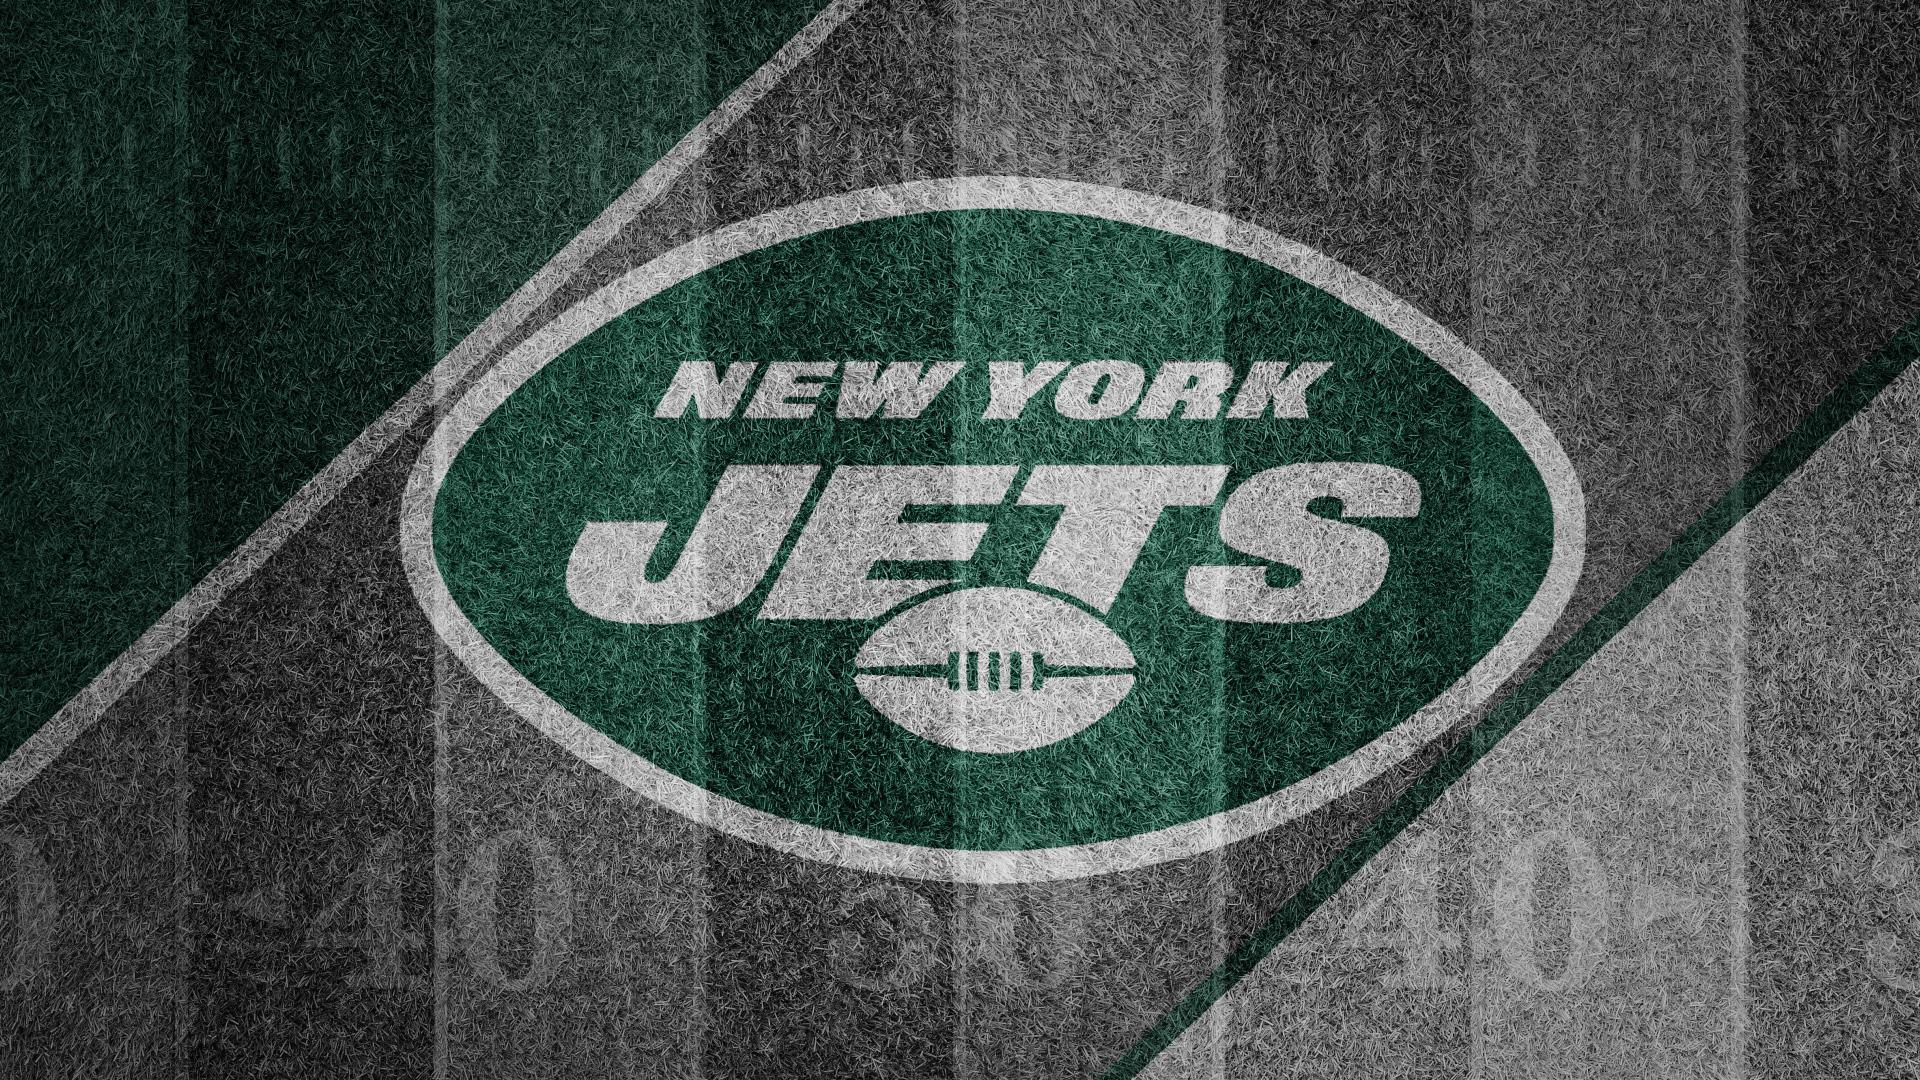 New York Jets 2019 Wallpapers Wallpaper Cave